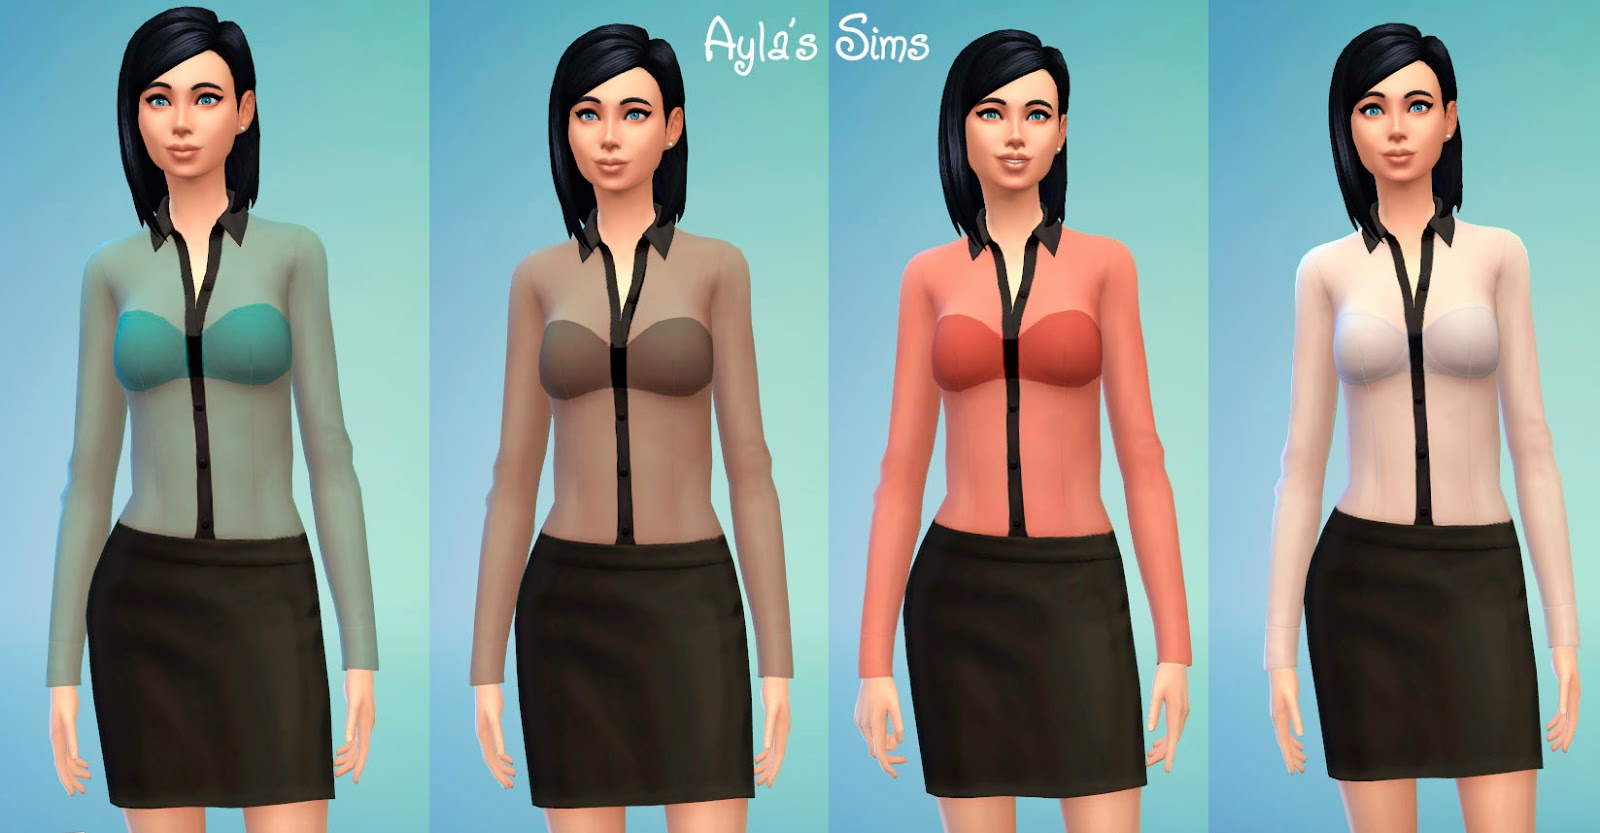 Transparent Blouse at Aylas Sims